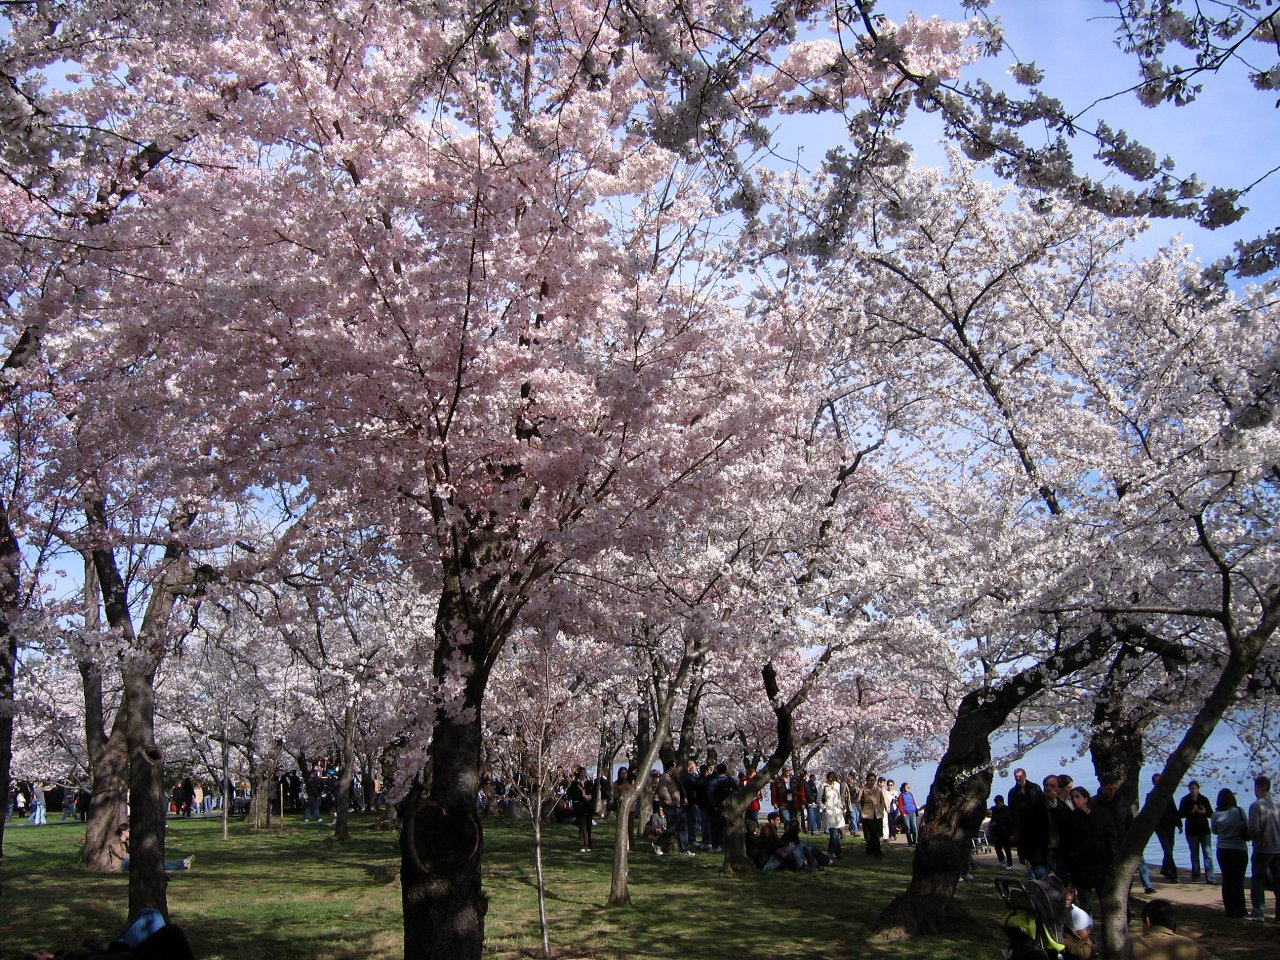 Beautiful canopy of cherry blossoms